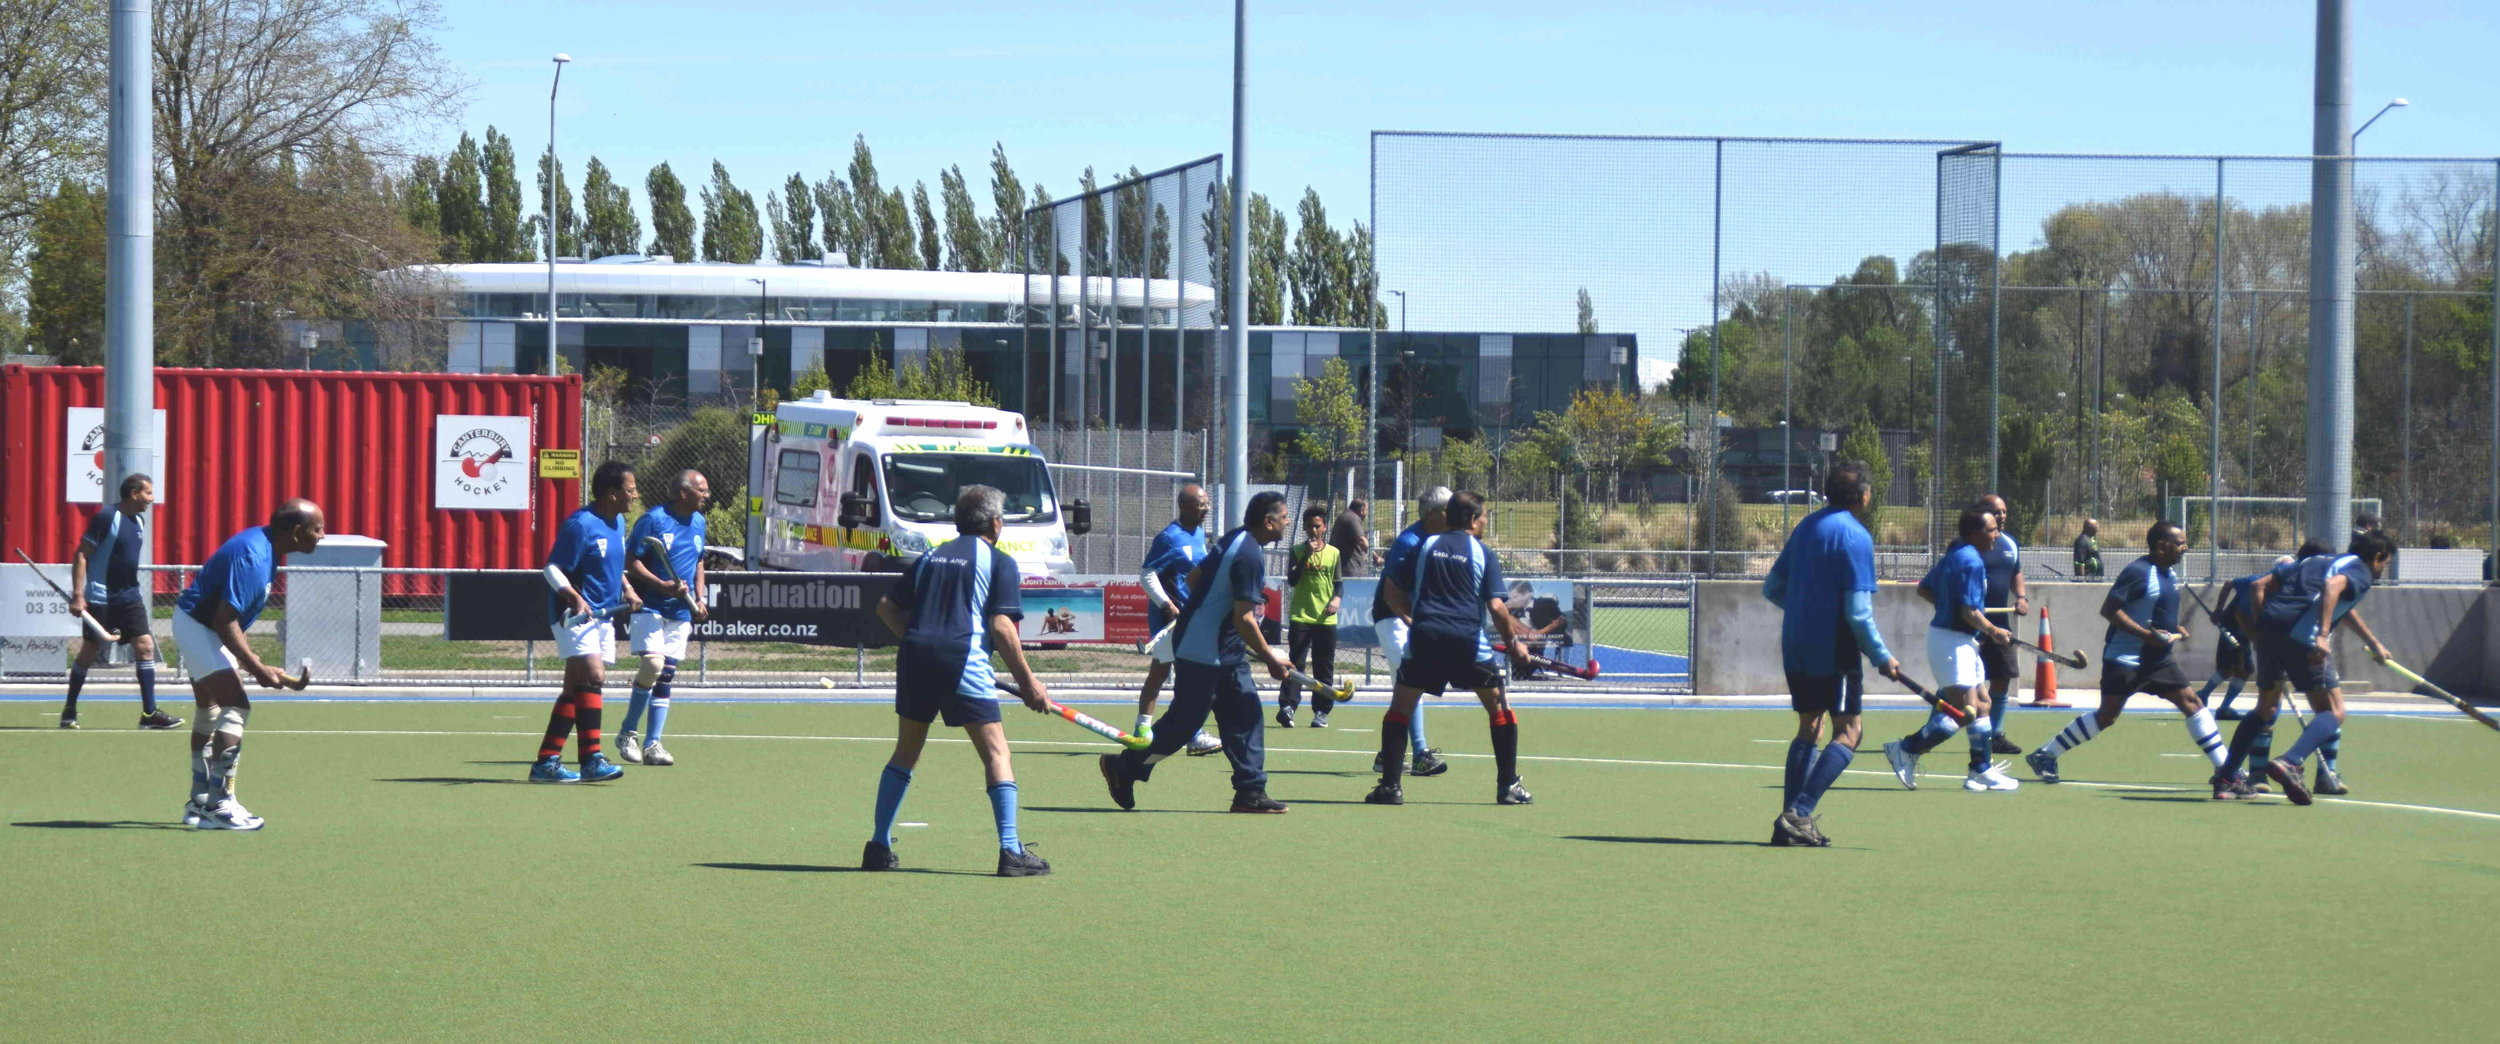 Golden Oldies showcasing their skills in Christchurch during the Labour weekend